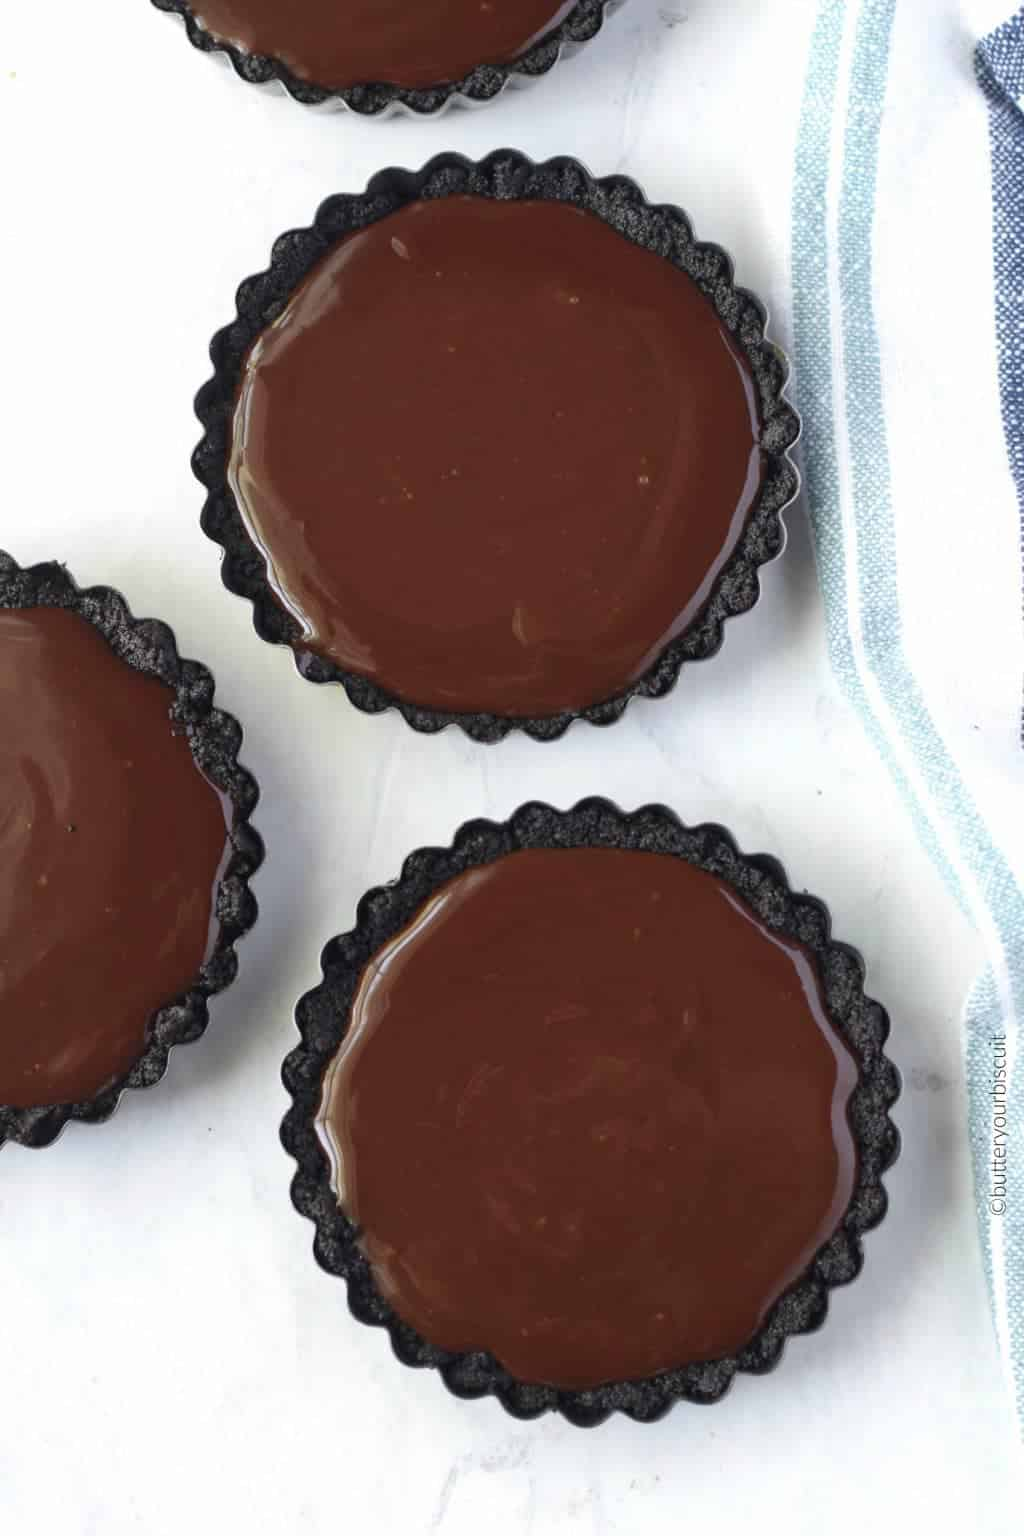 No bake chocolate mini tarts all set up and ready for fruit